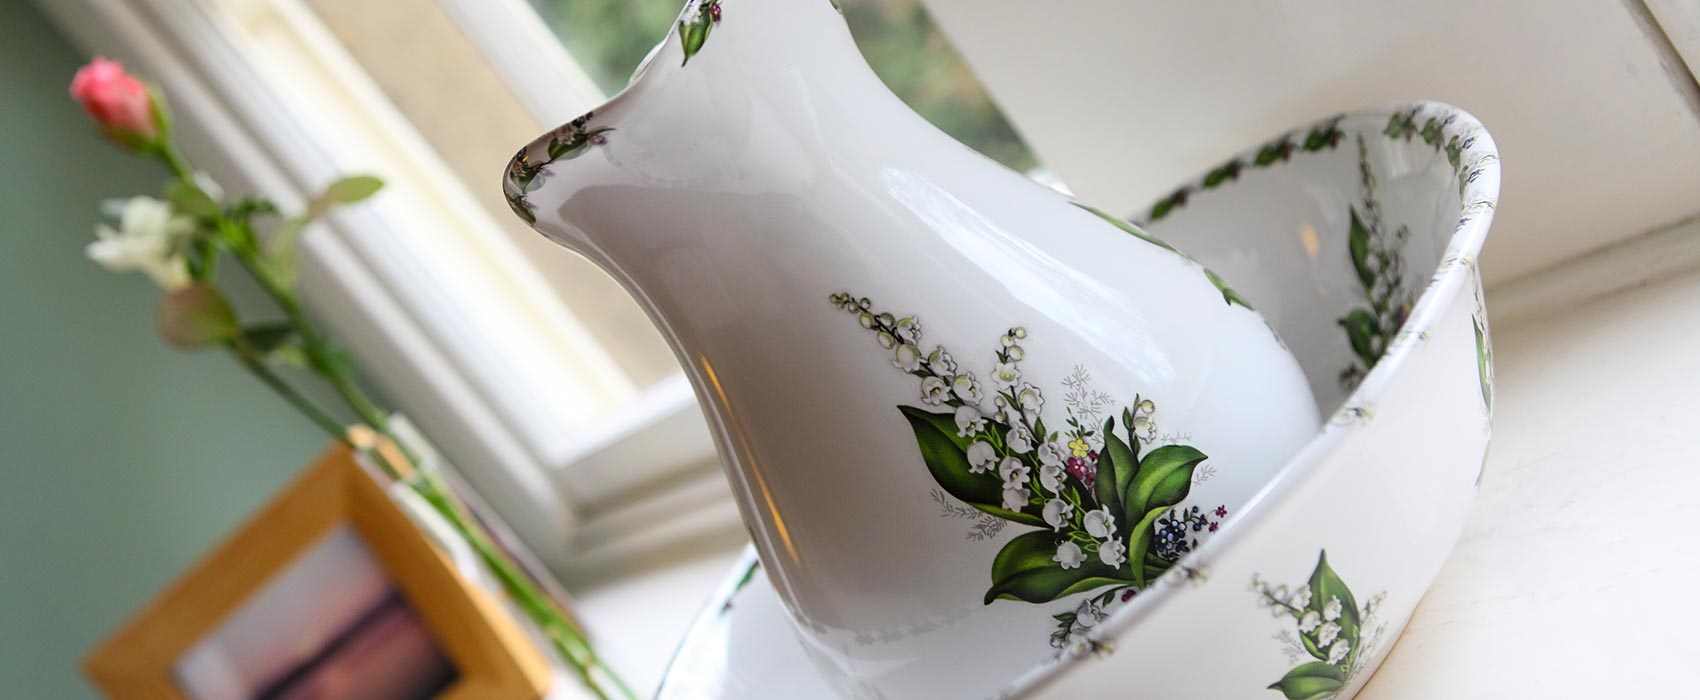 White jug with flowers painted on it with matching bowl